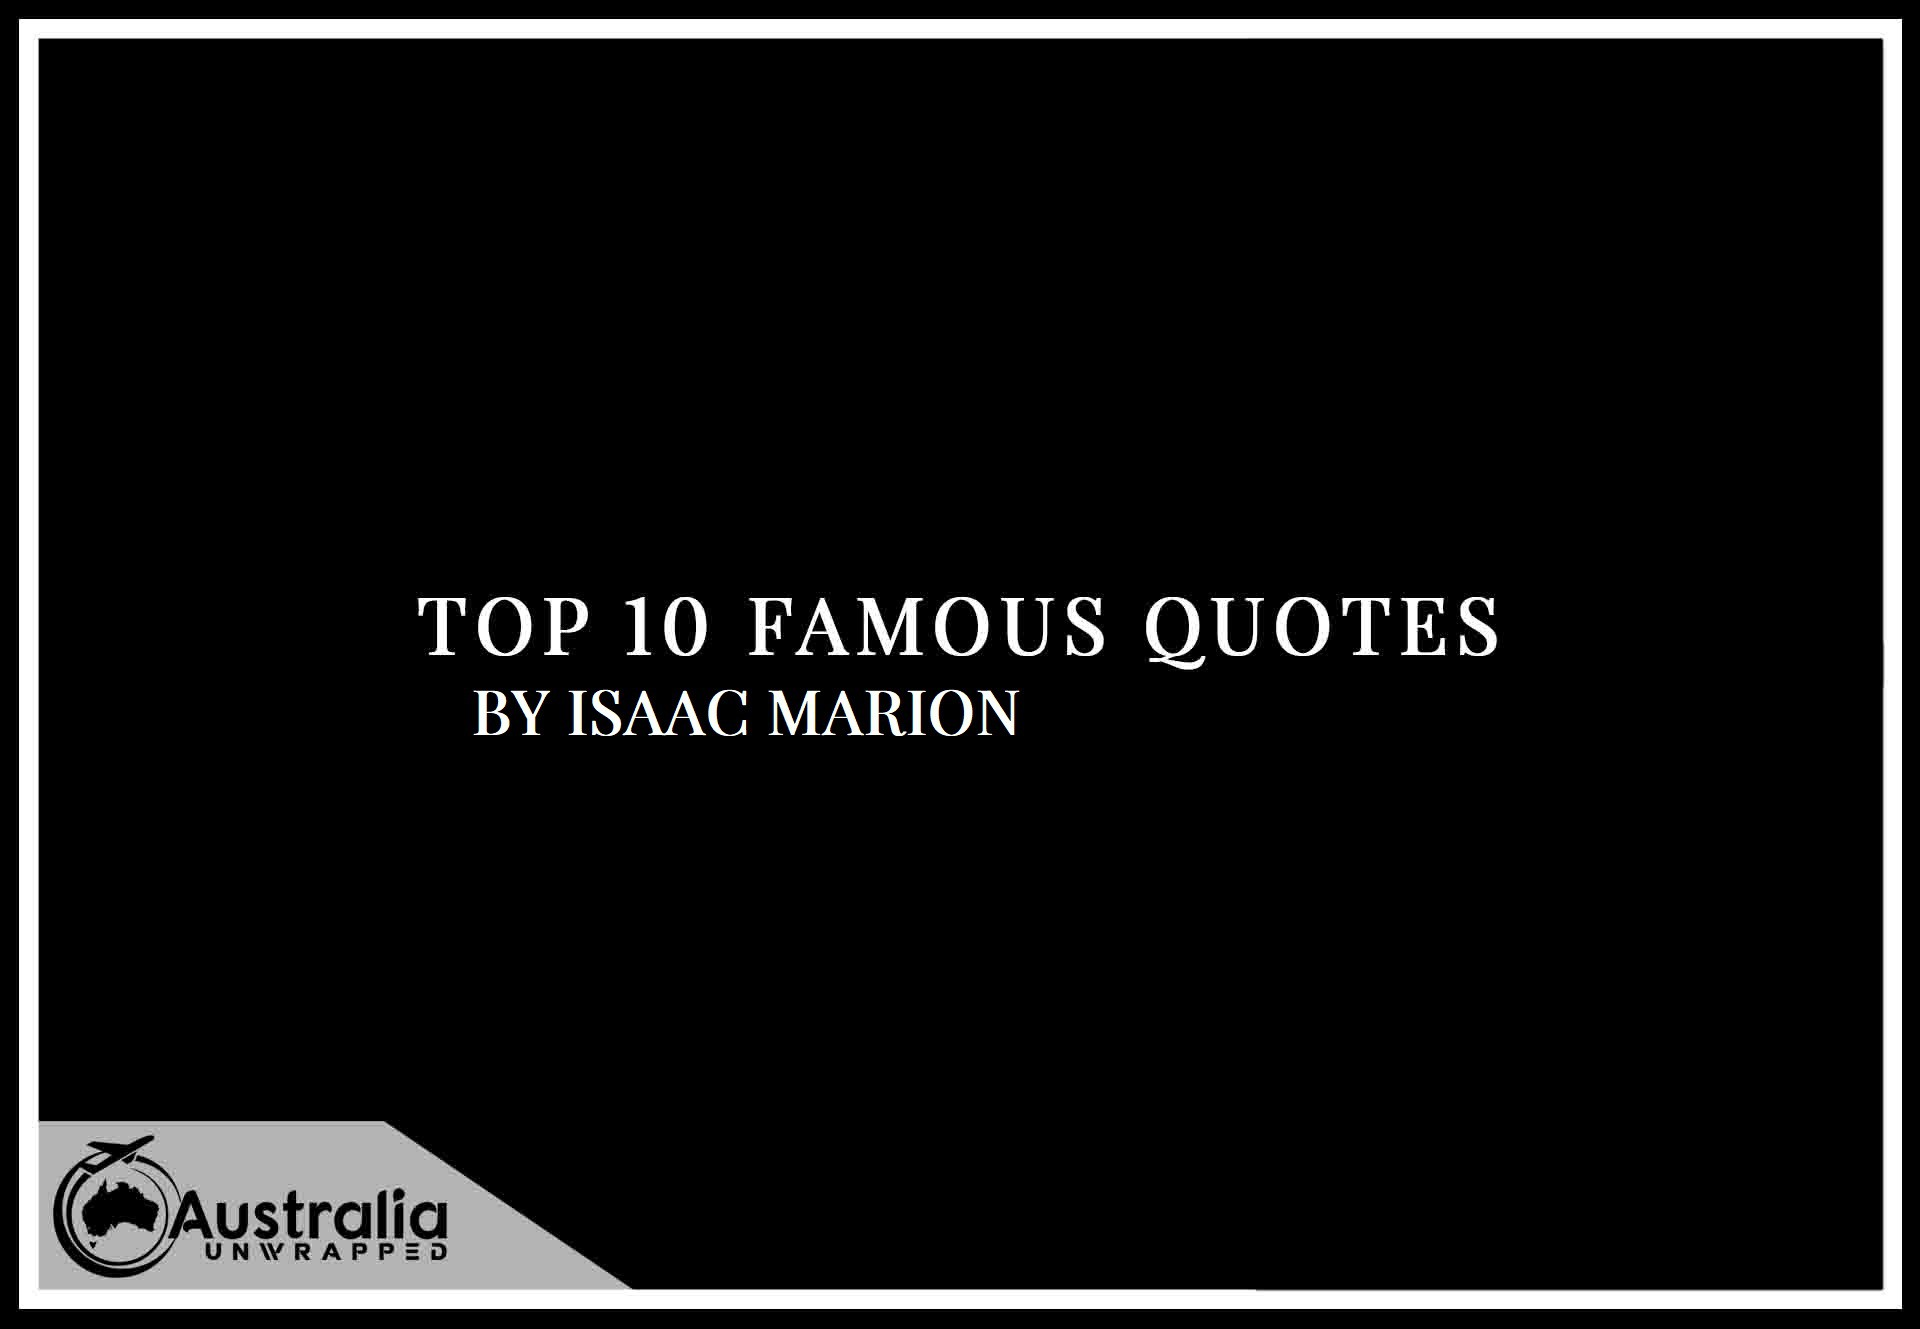 Top 10 Famous Quotes by Author Isaac Marion